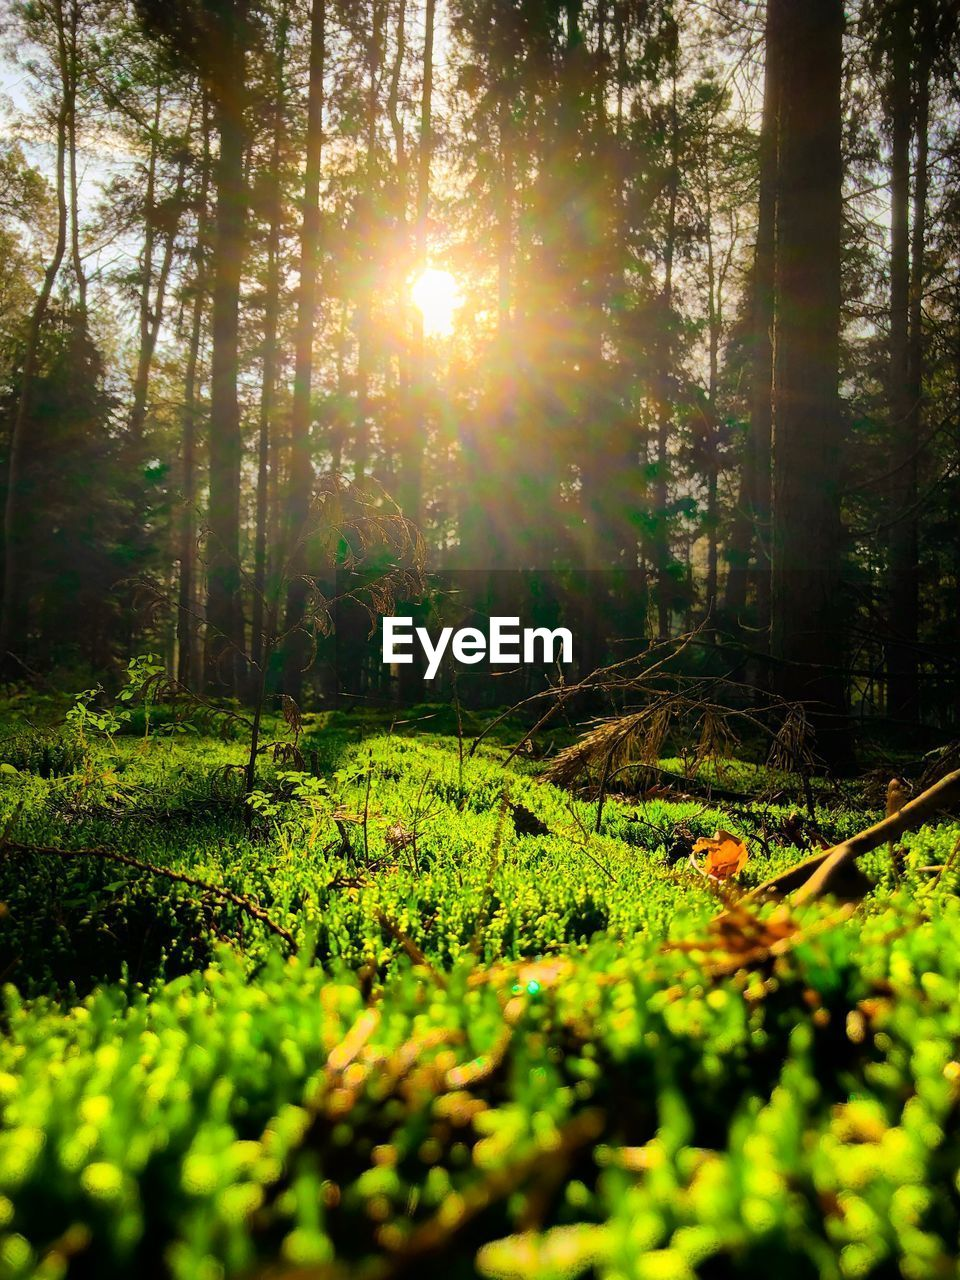 plant, growth, tree, land, forest, beauty in nature, sunlight, nature, tranquility, day, sun, lens flare, flower, green color, tranquil scene, no people, scenics - nature, flowering plant, sunbeam, tree trunk, woodland, outdoors, bright, surface level